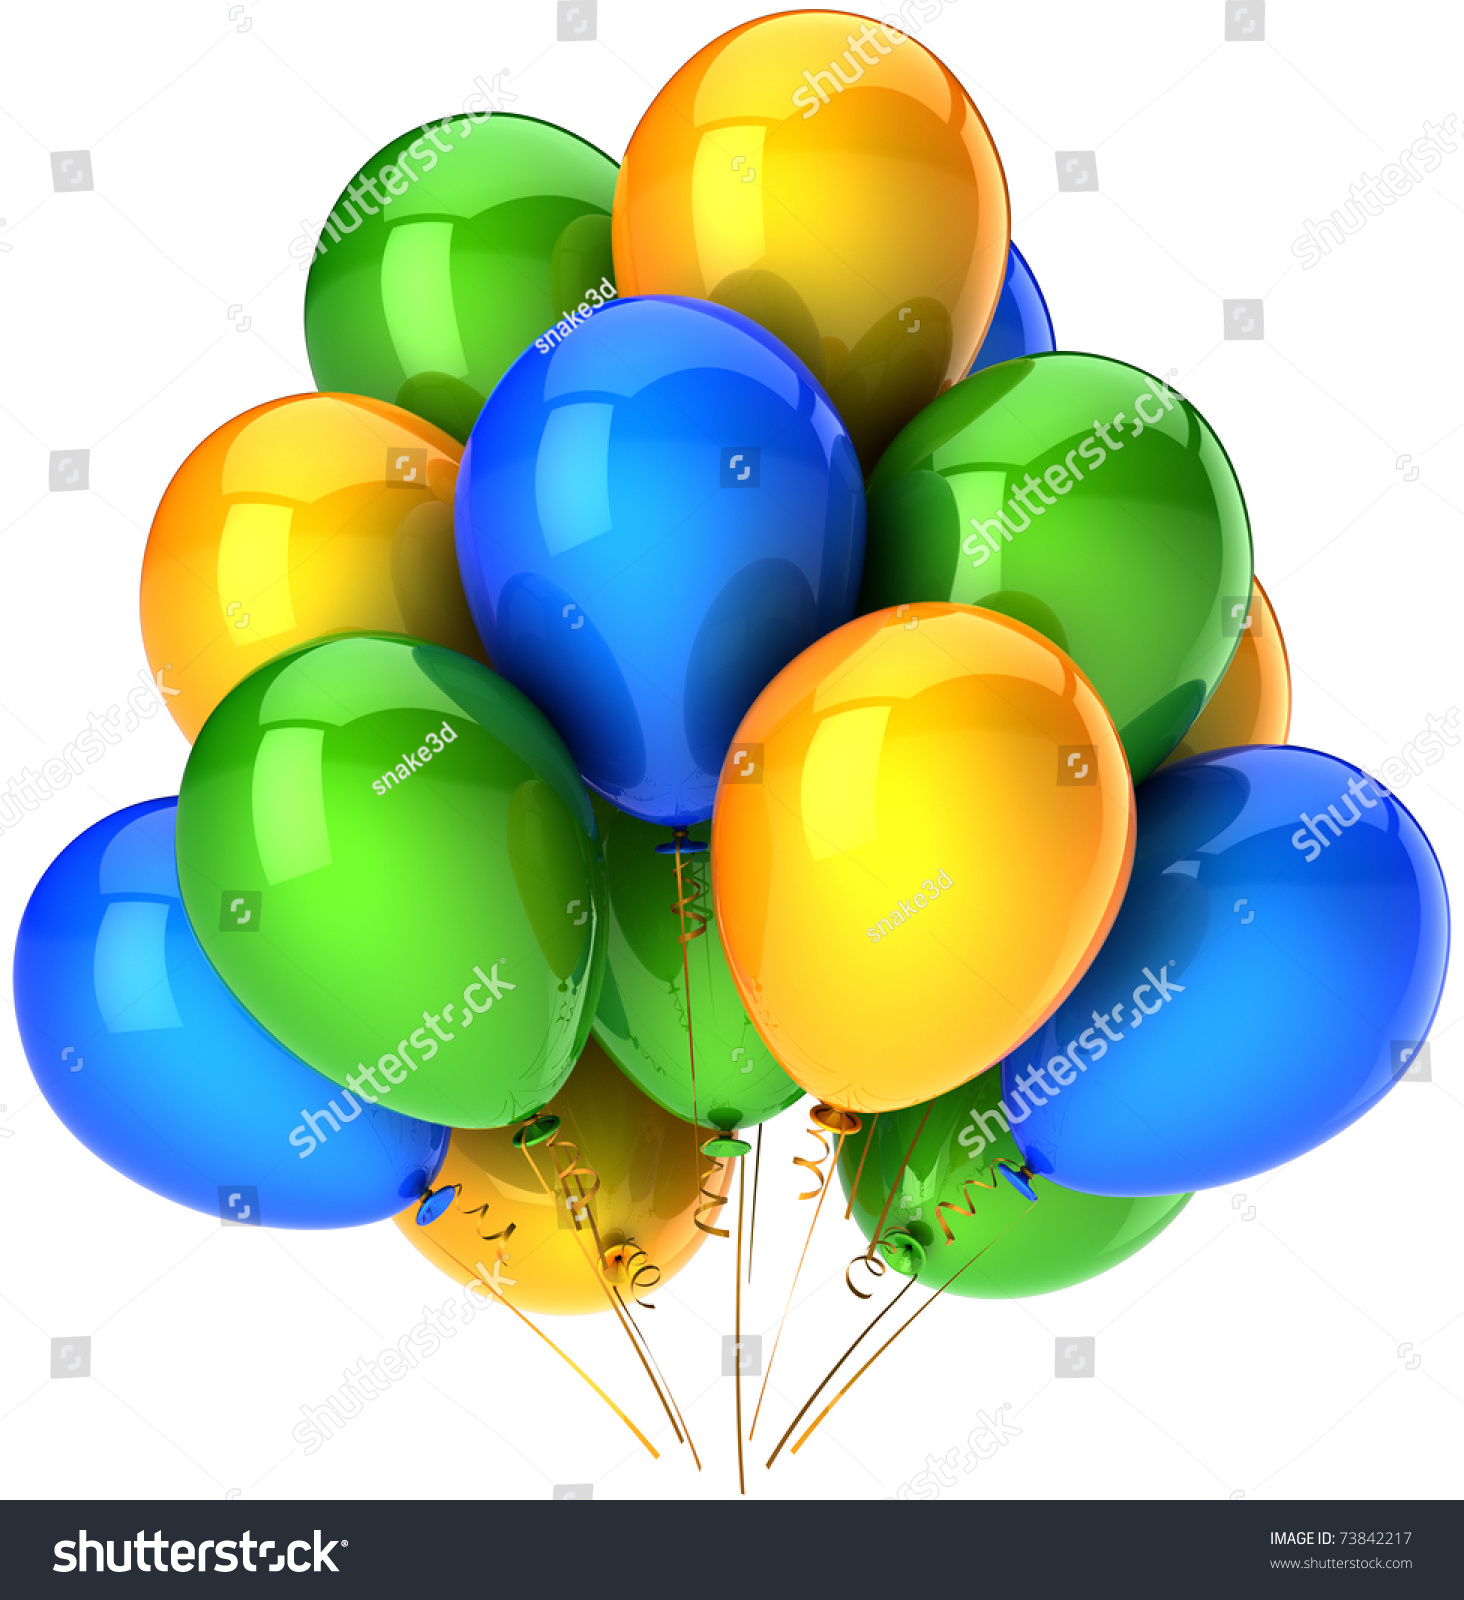 Green and blue balloons - Party Balloons Blue Yellow Green Colorful Shiny Birthday Anniversary Decoration Blank 3d Render Isolated On